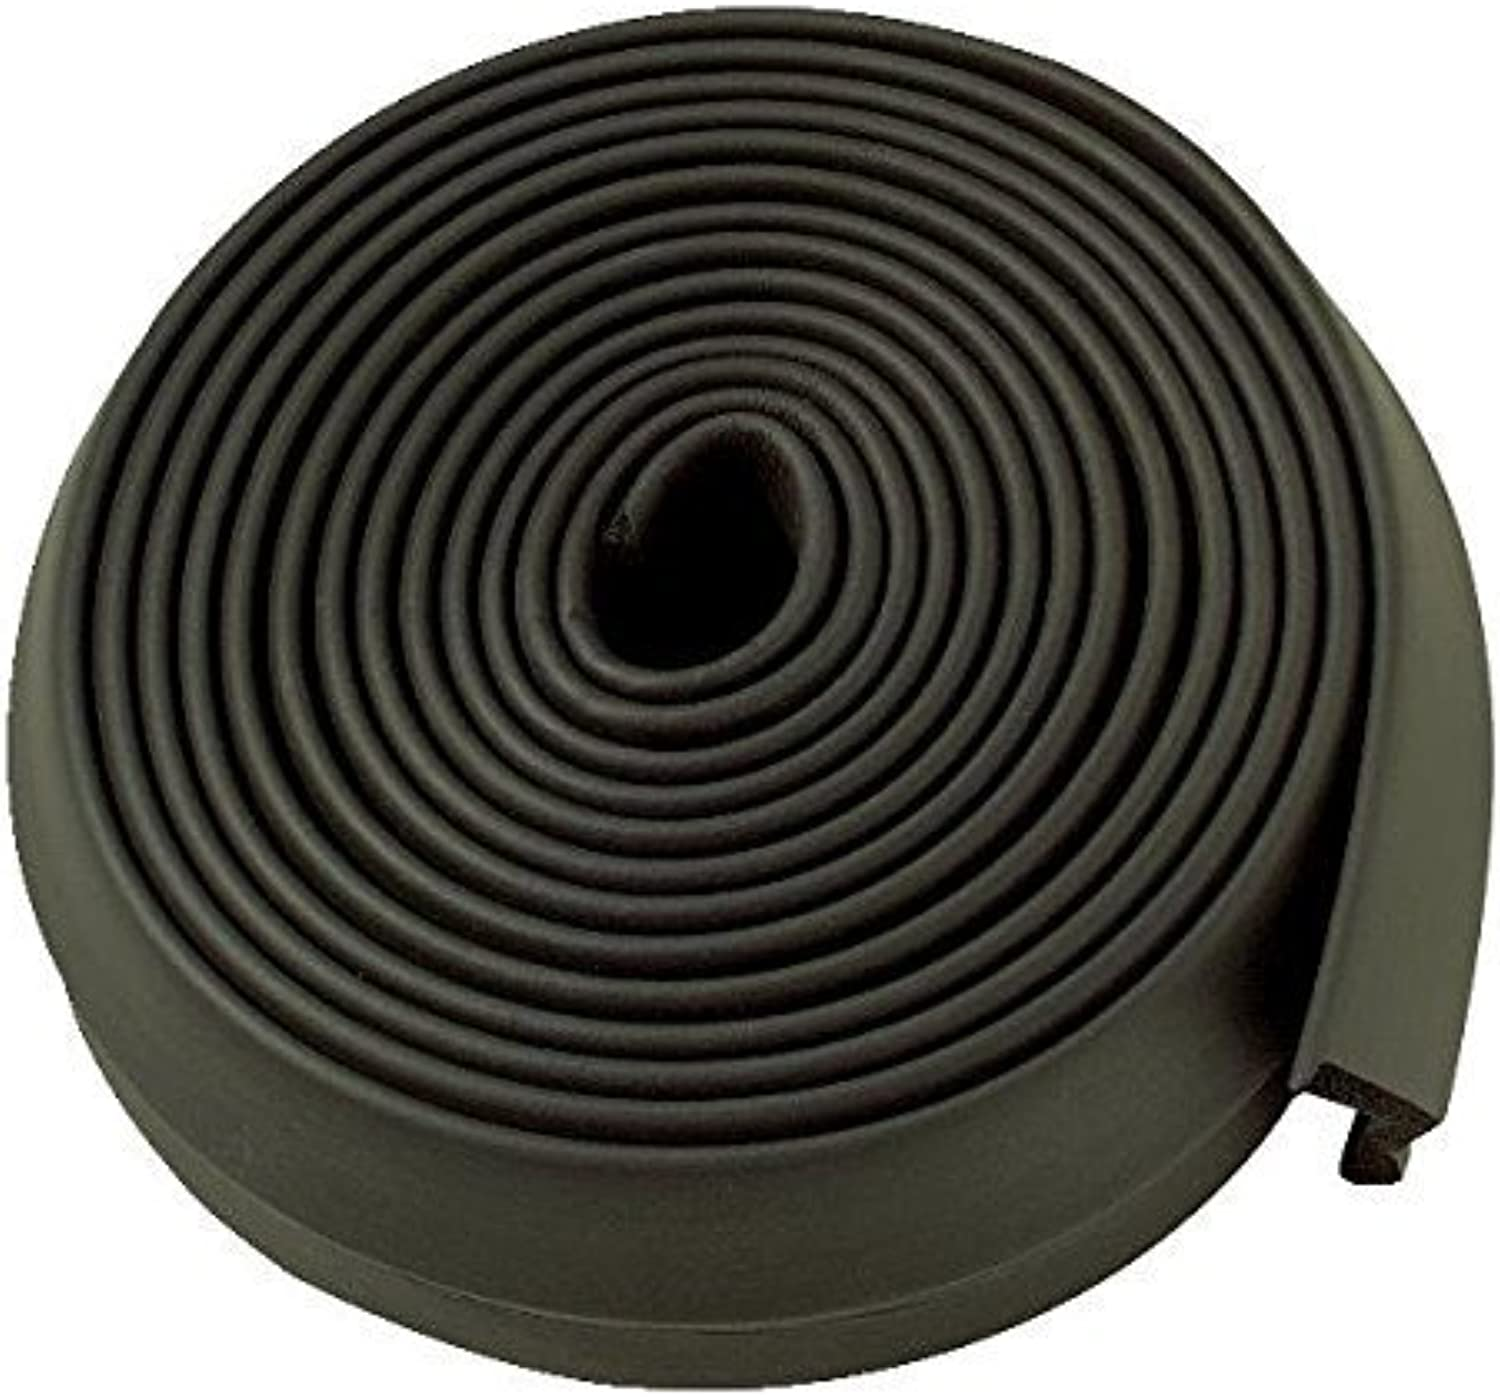 M-d Products 16 Rubber Garage Door Bottom Seal 03749 by M-d Products B00Y3PFC3I | Auktion